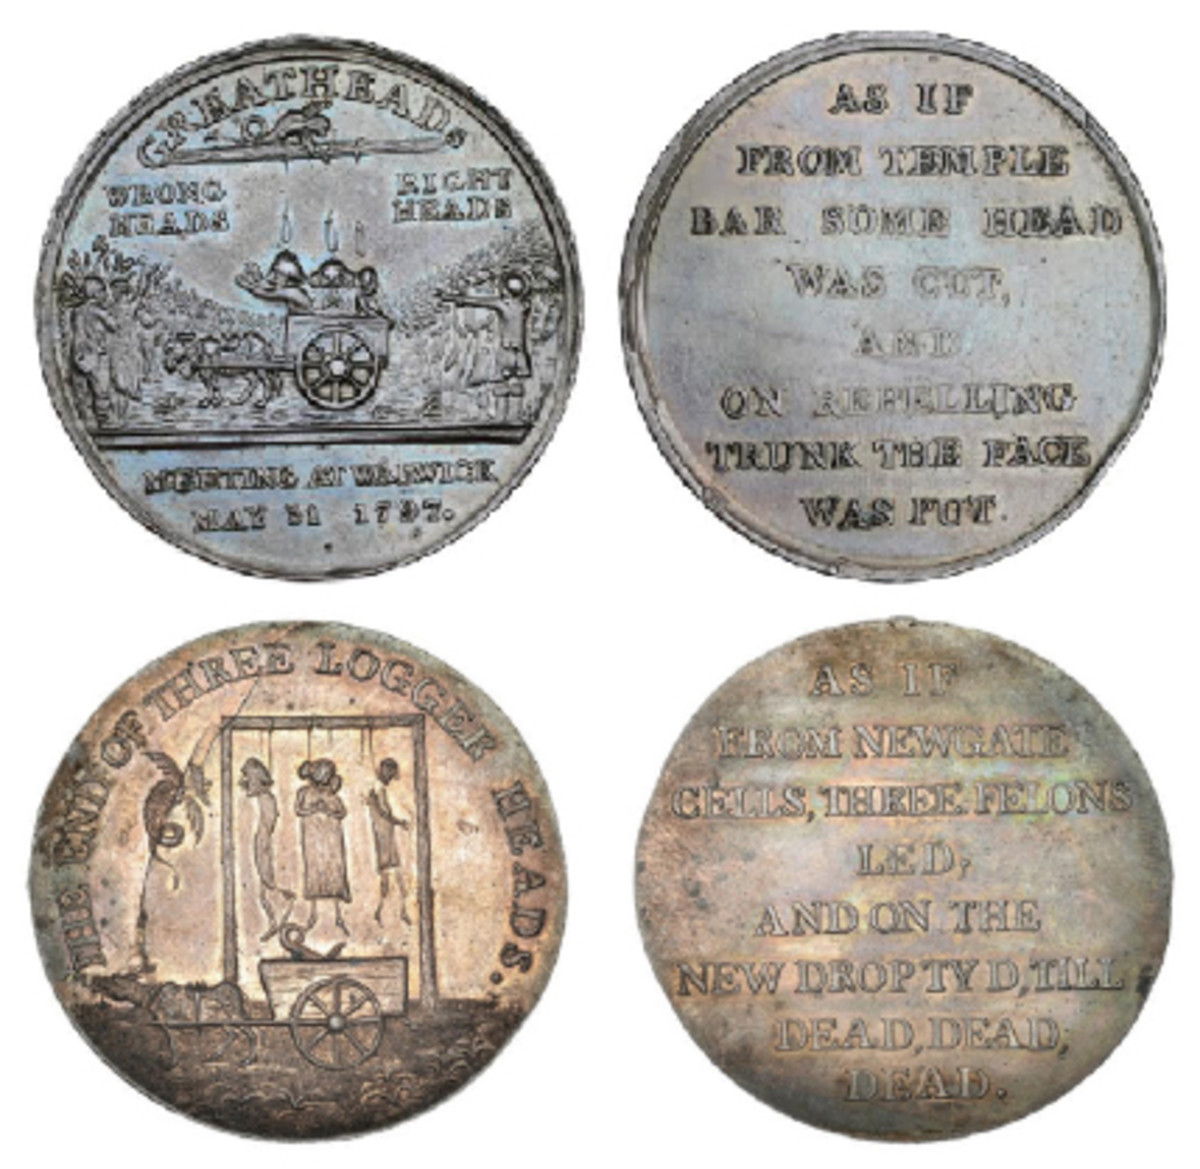 Obverses and reverses of the two Greatheed Petition meeting medals, several of which have been sold in recent years by Dix, Noonan & Webb. (Images courtesy & © DNW)